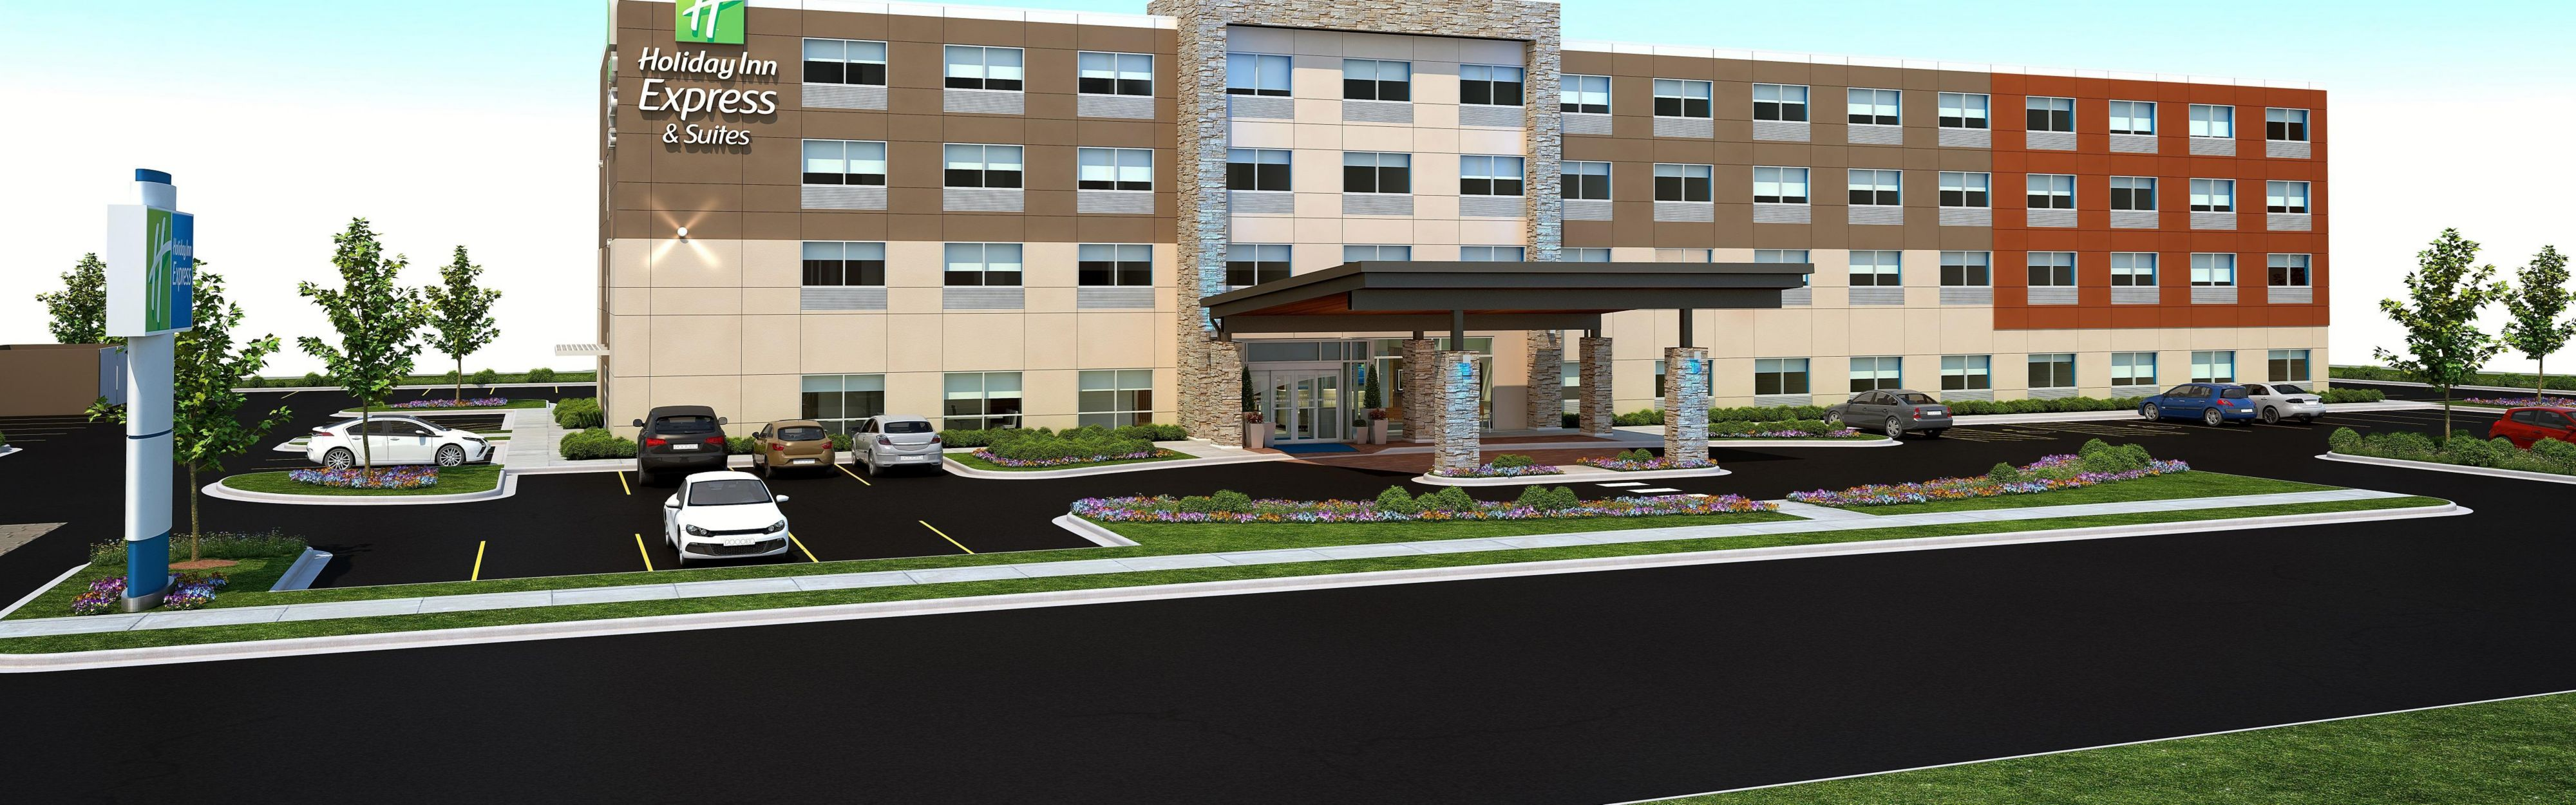 Holiday Inn Express & Suites Indianapolis NW - Zionsville image 0